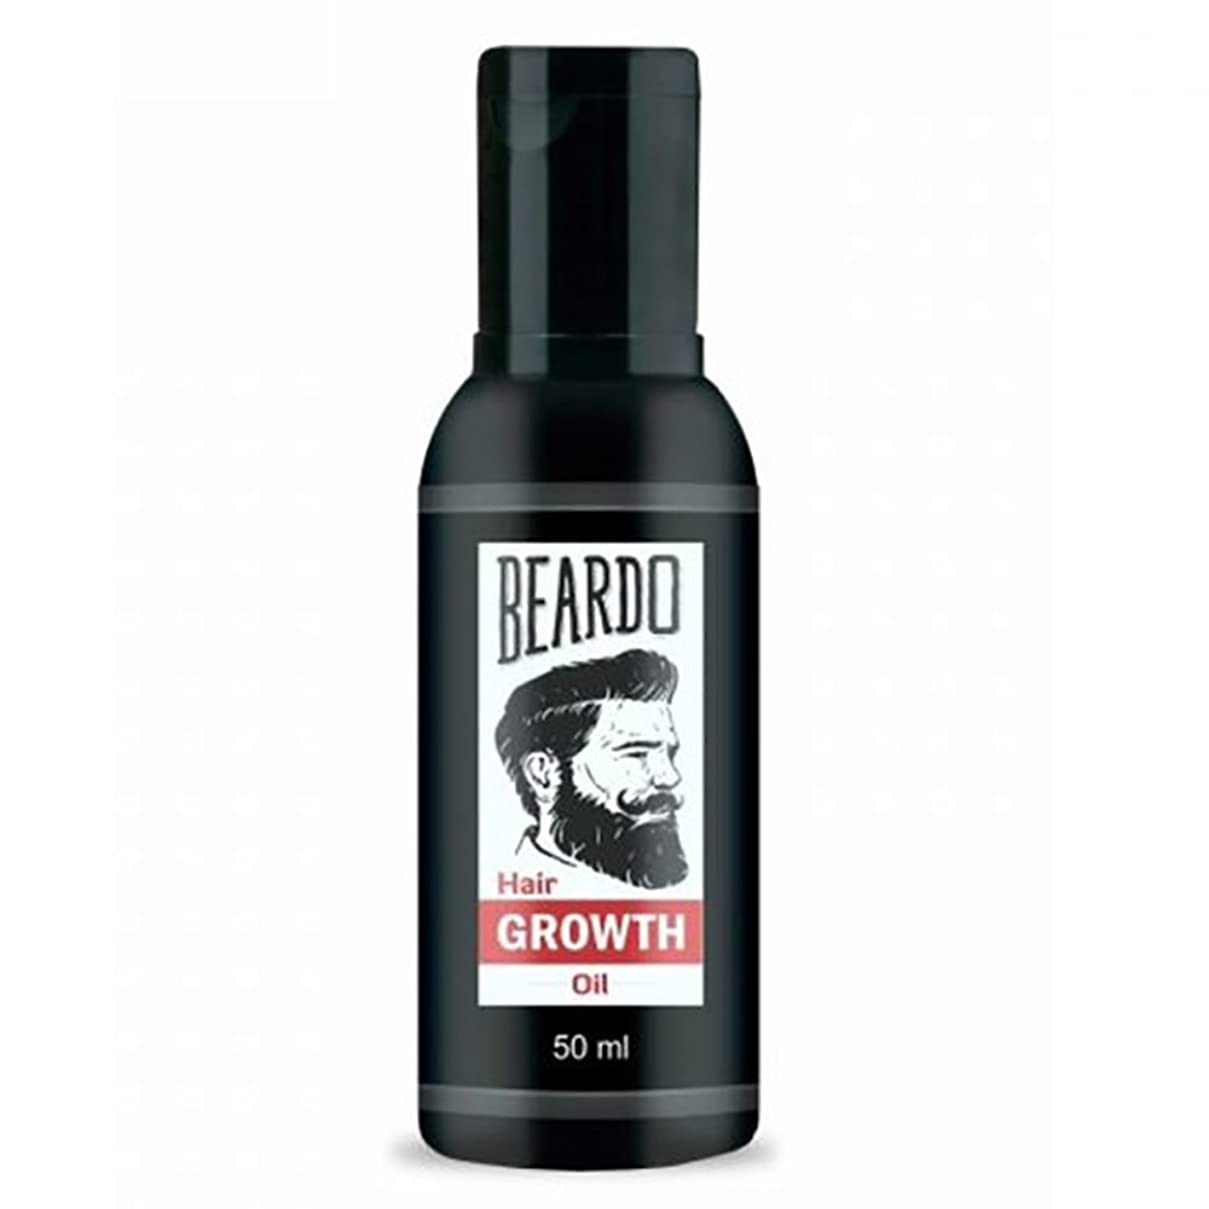 遺伝的カプラー請願者Beardo Beard and Hair Growth Oil 50 ml With Natural Ingredients - Rose and Hibiscus Oils